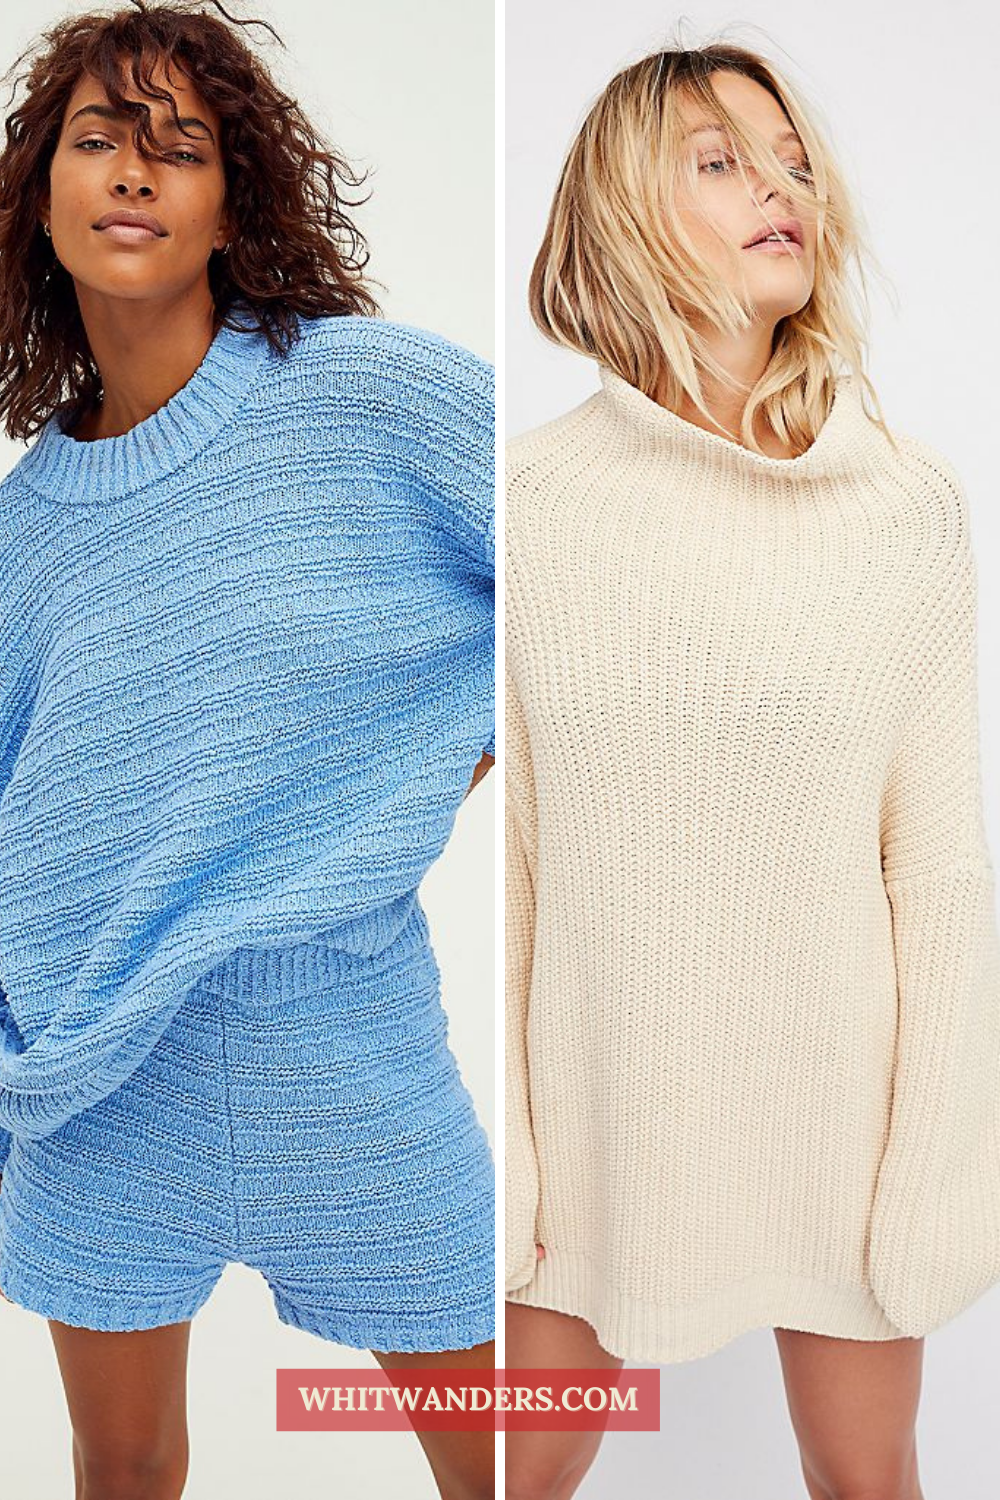 Cozy Gifts by popular Seattle tall fashion blog, Whit Wanders: collage image of two women wearing an oversized ribbed sweater.